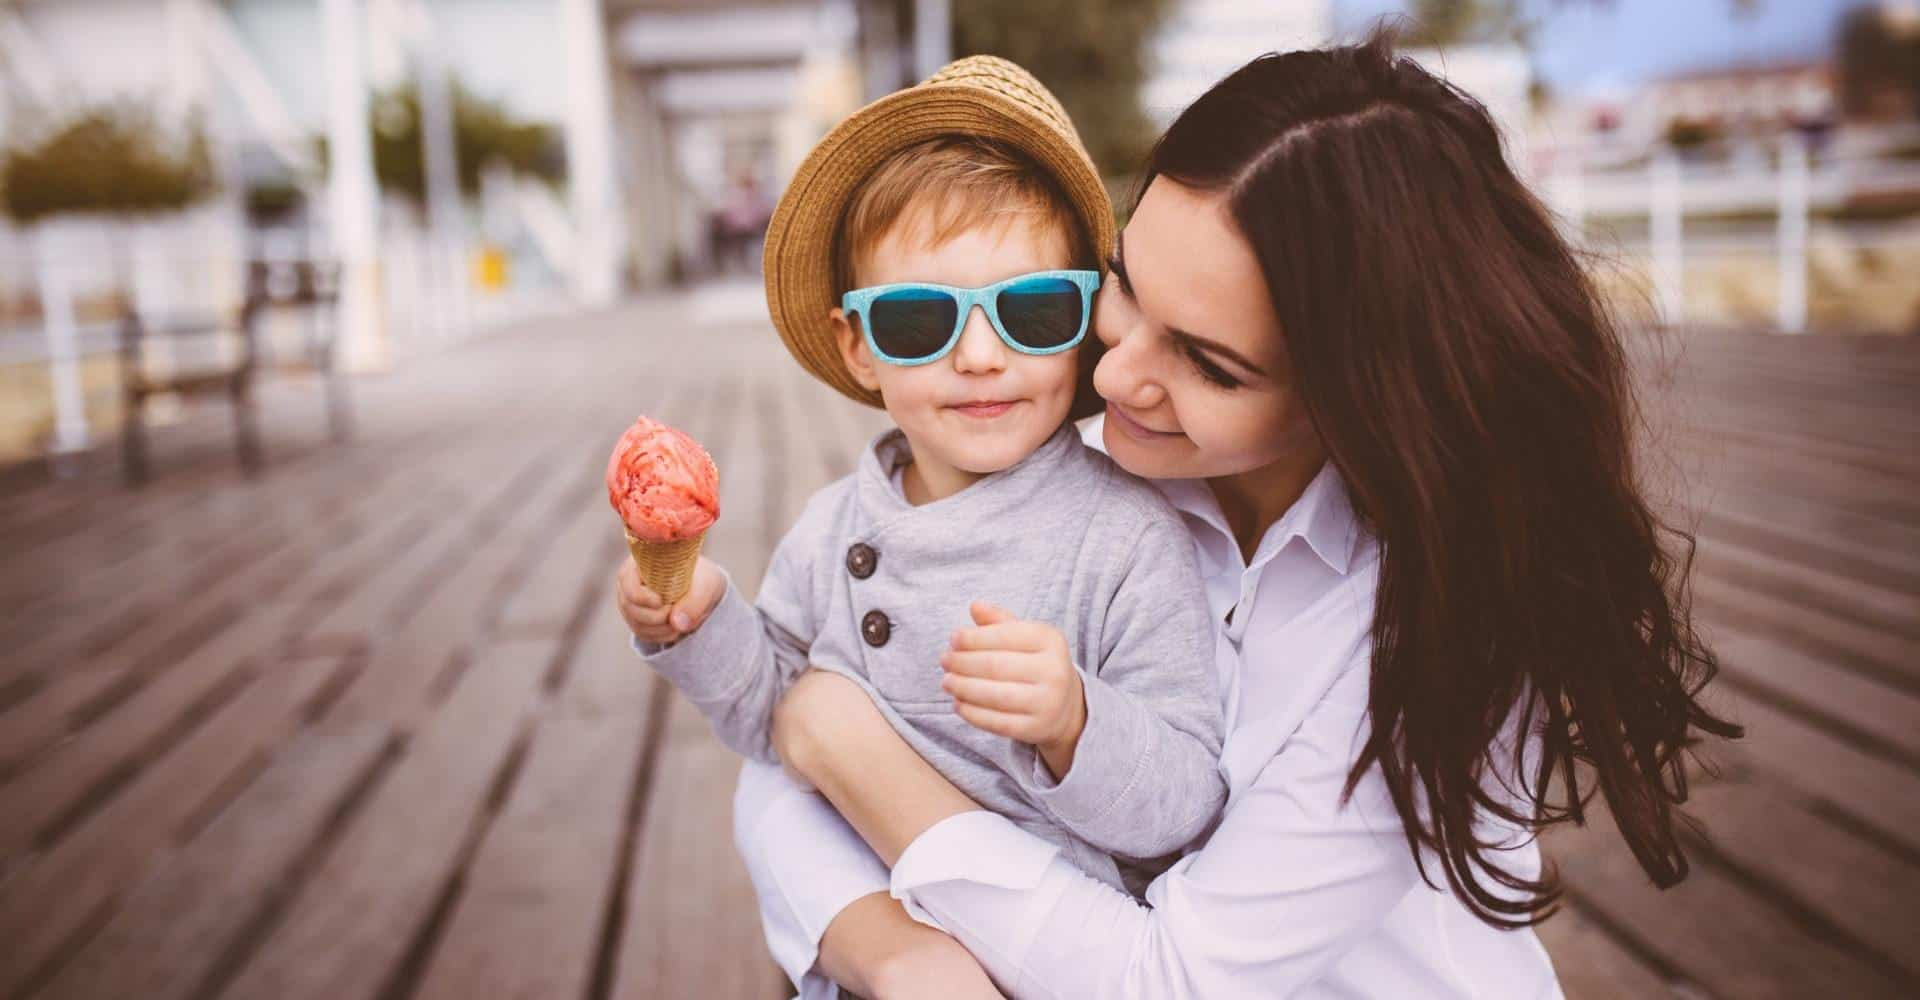 Woman holding a child with an ice cream cone